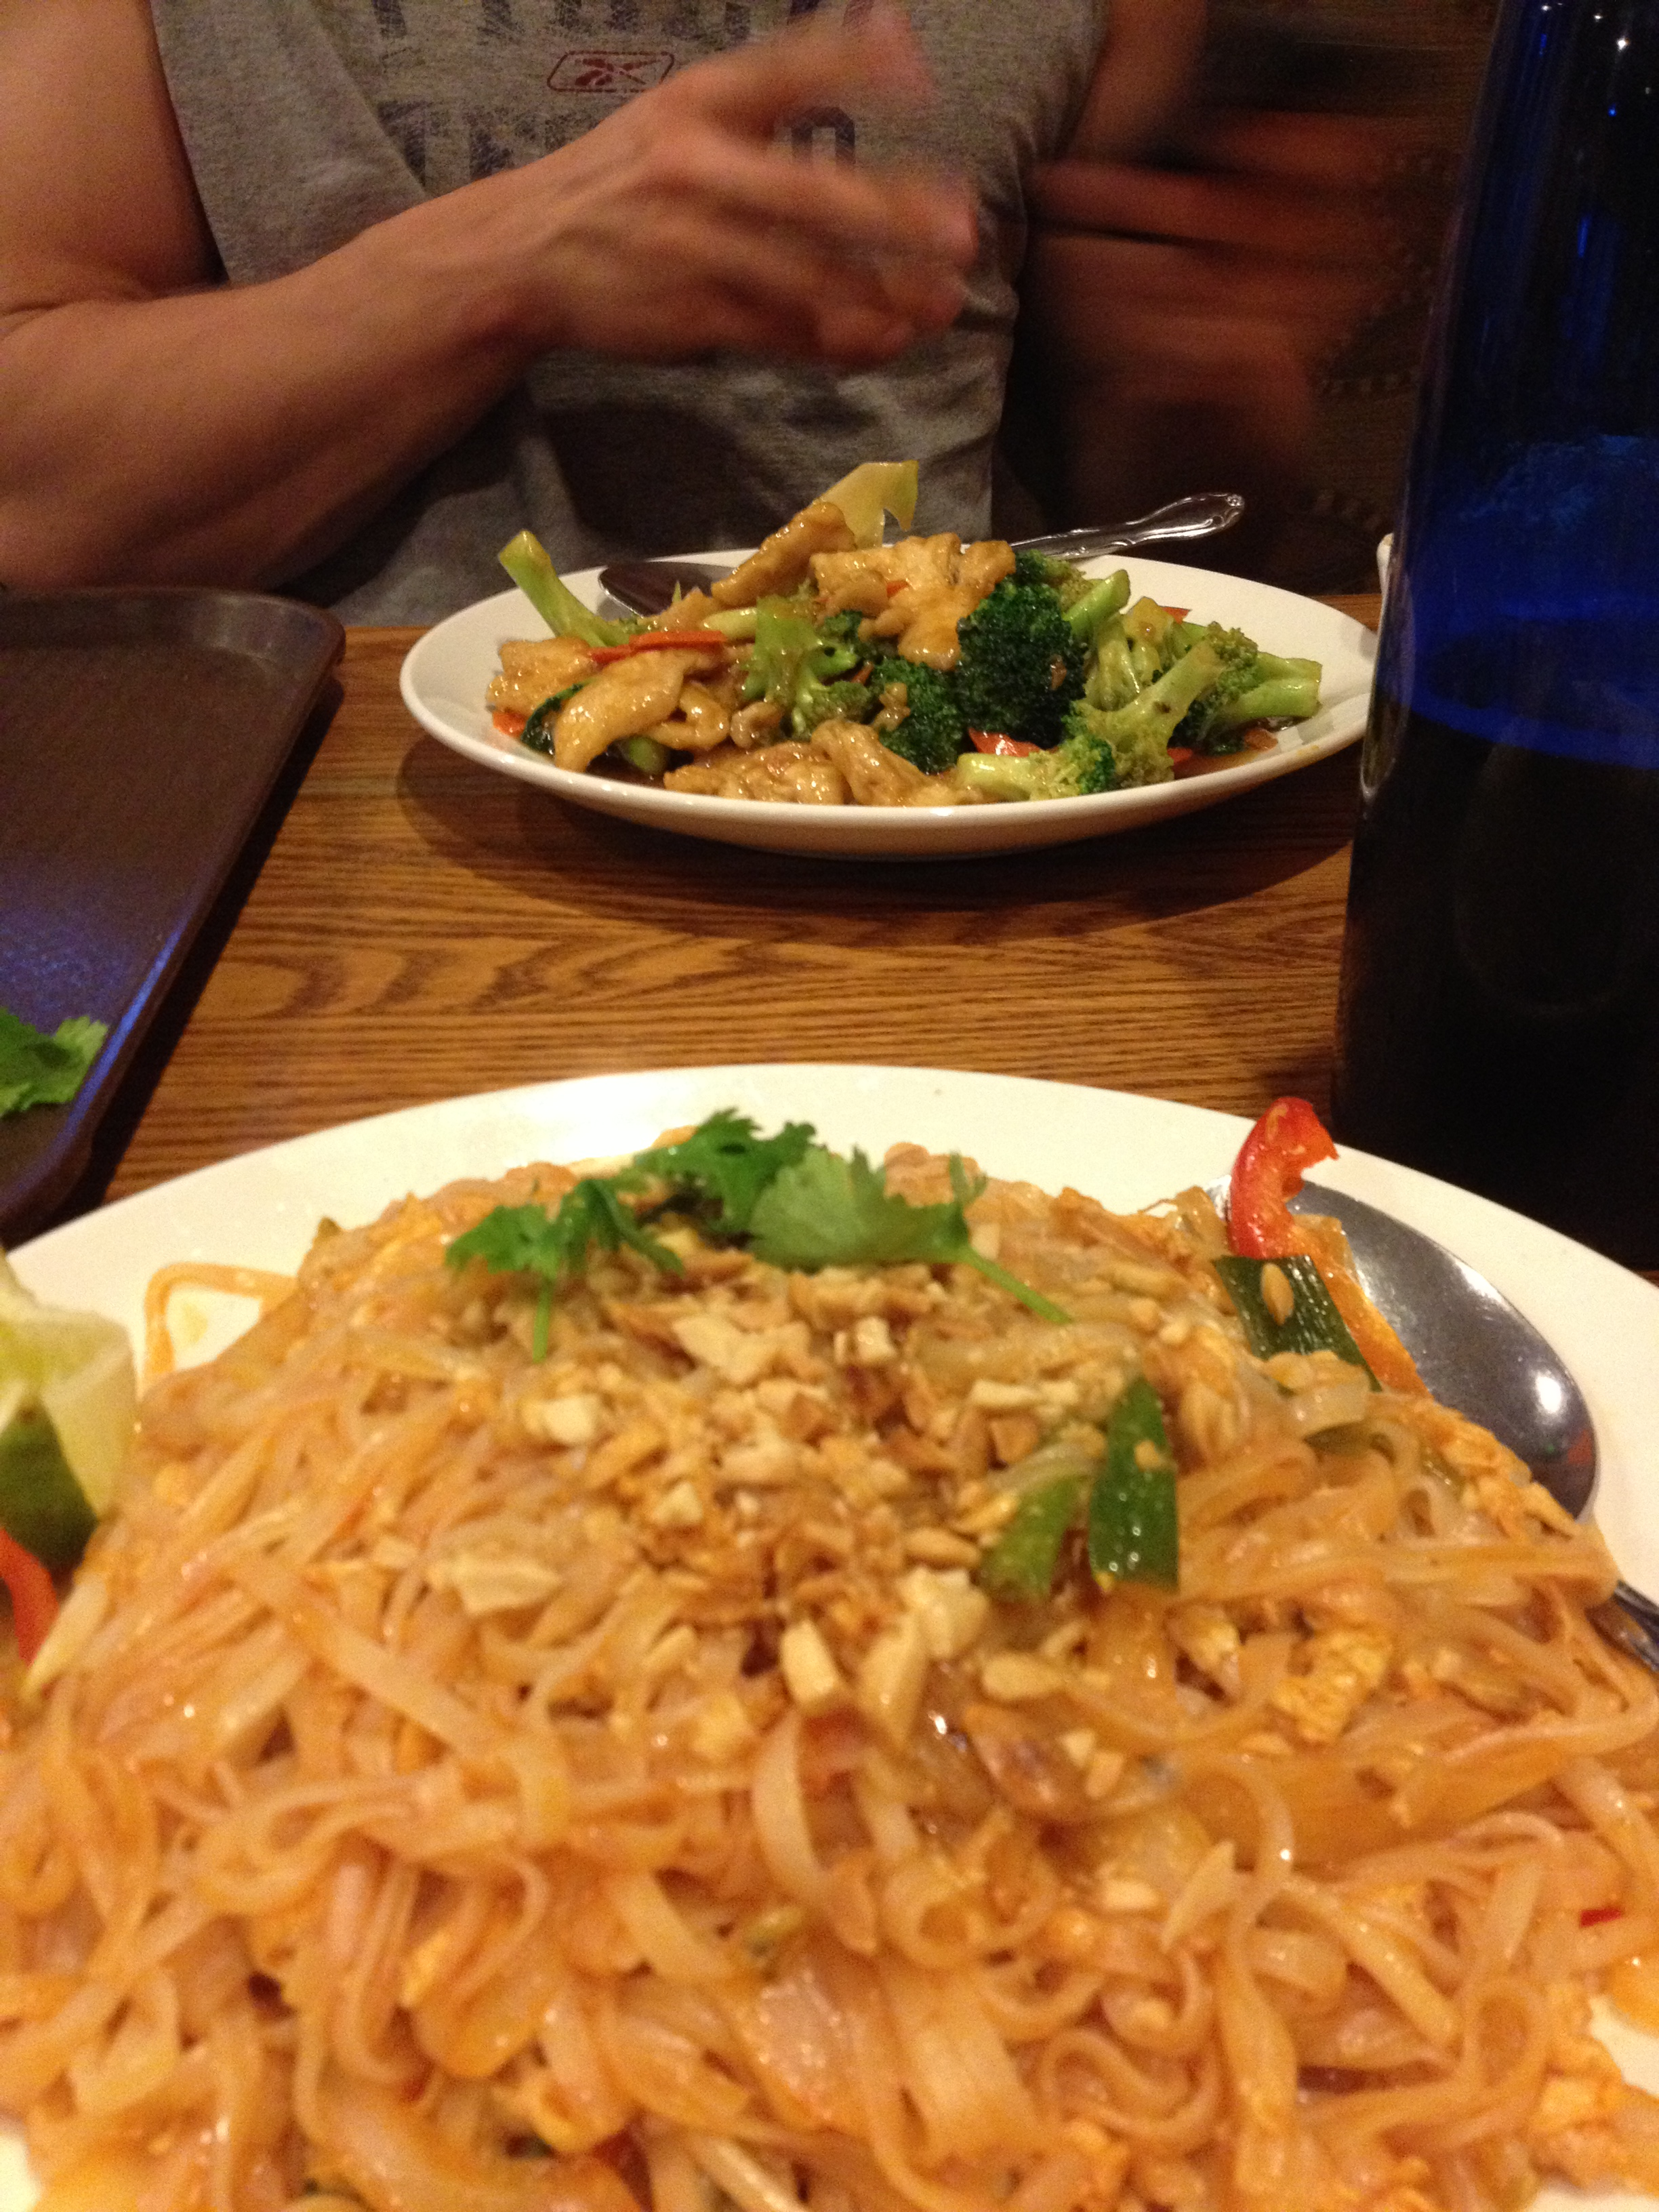 I got a delicious Pad Thai and he got Chicken and Broccoli